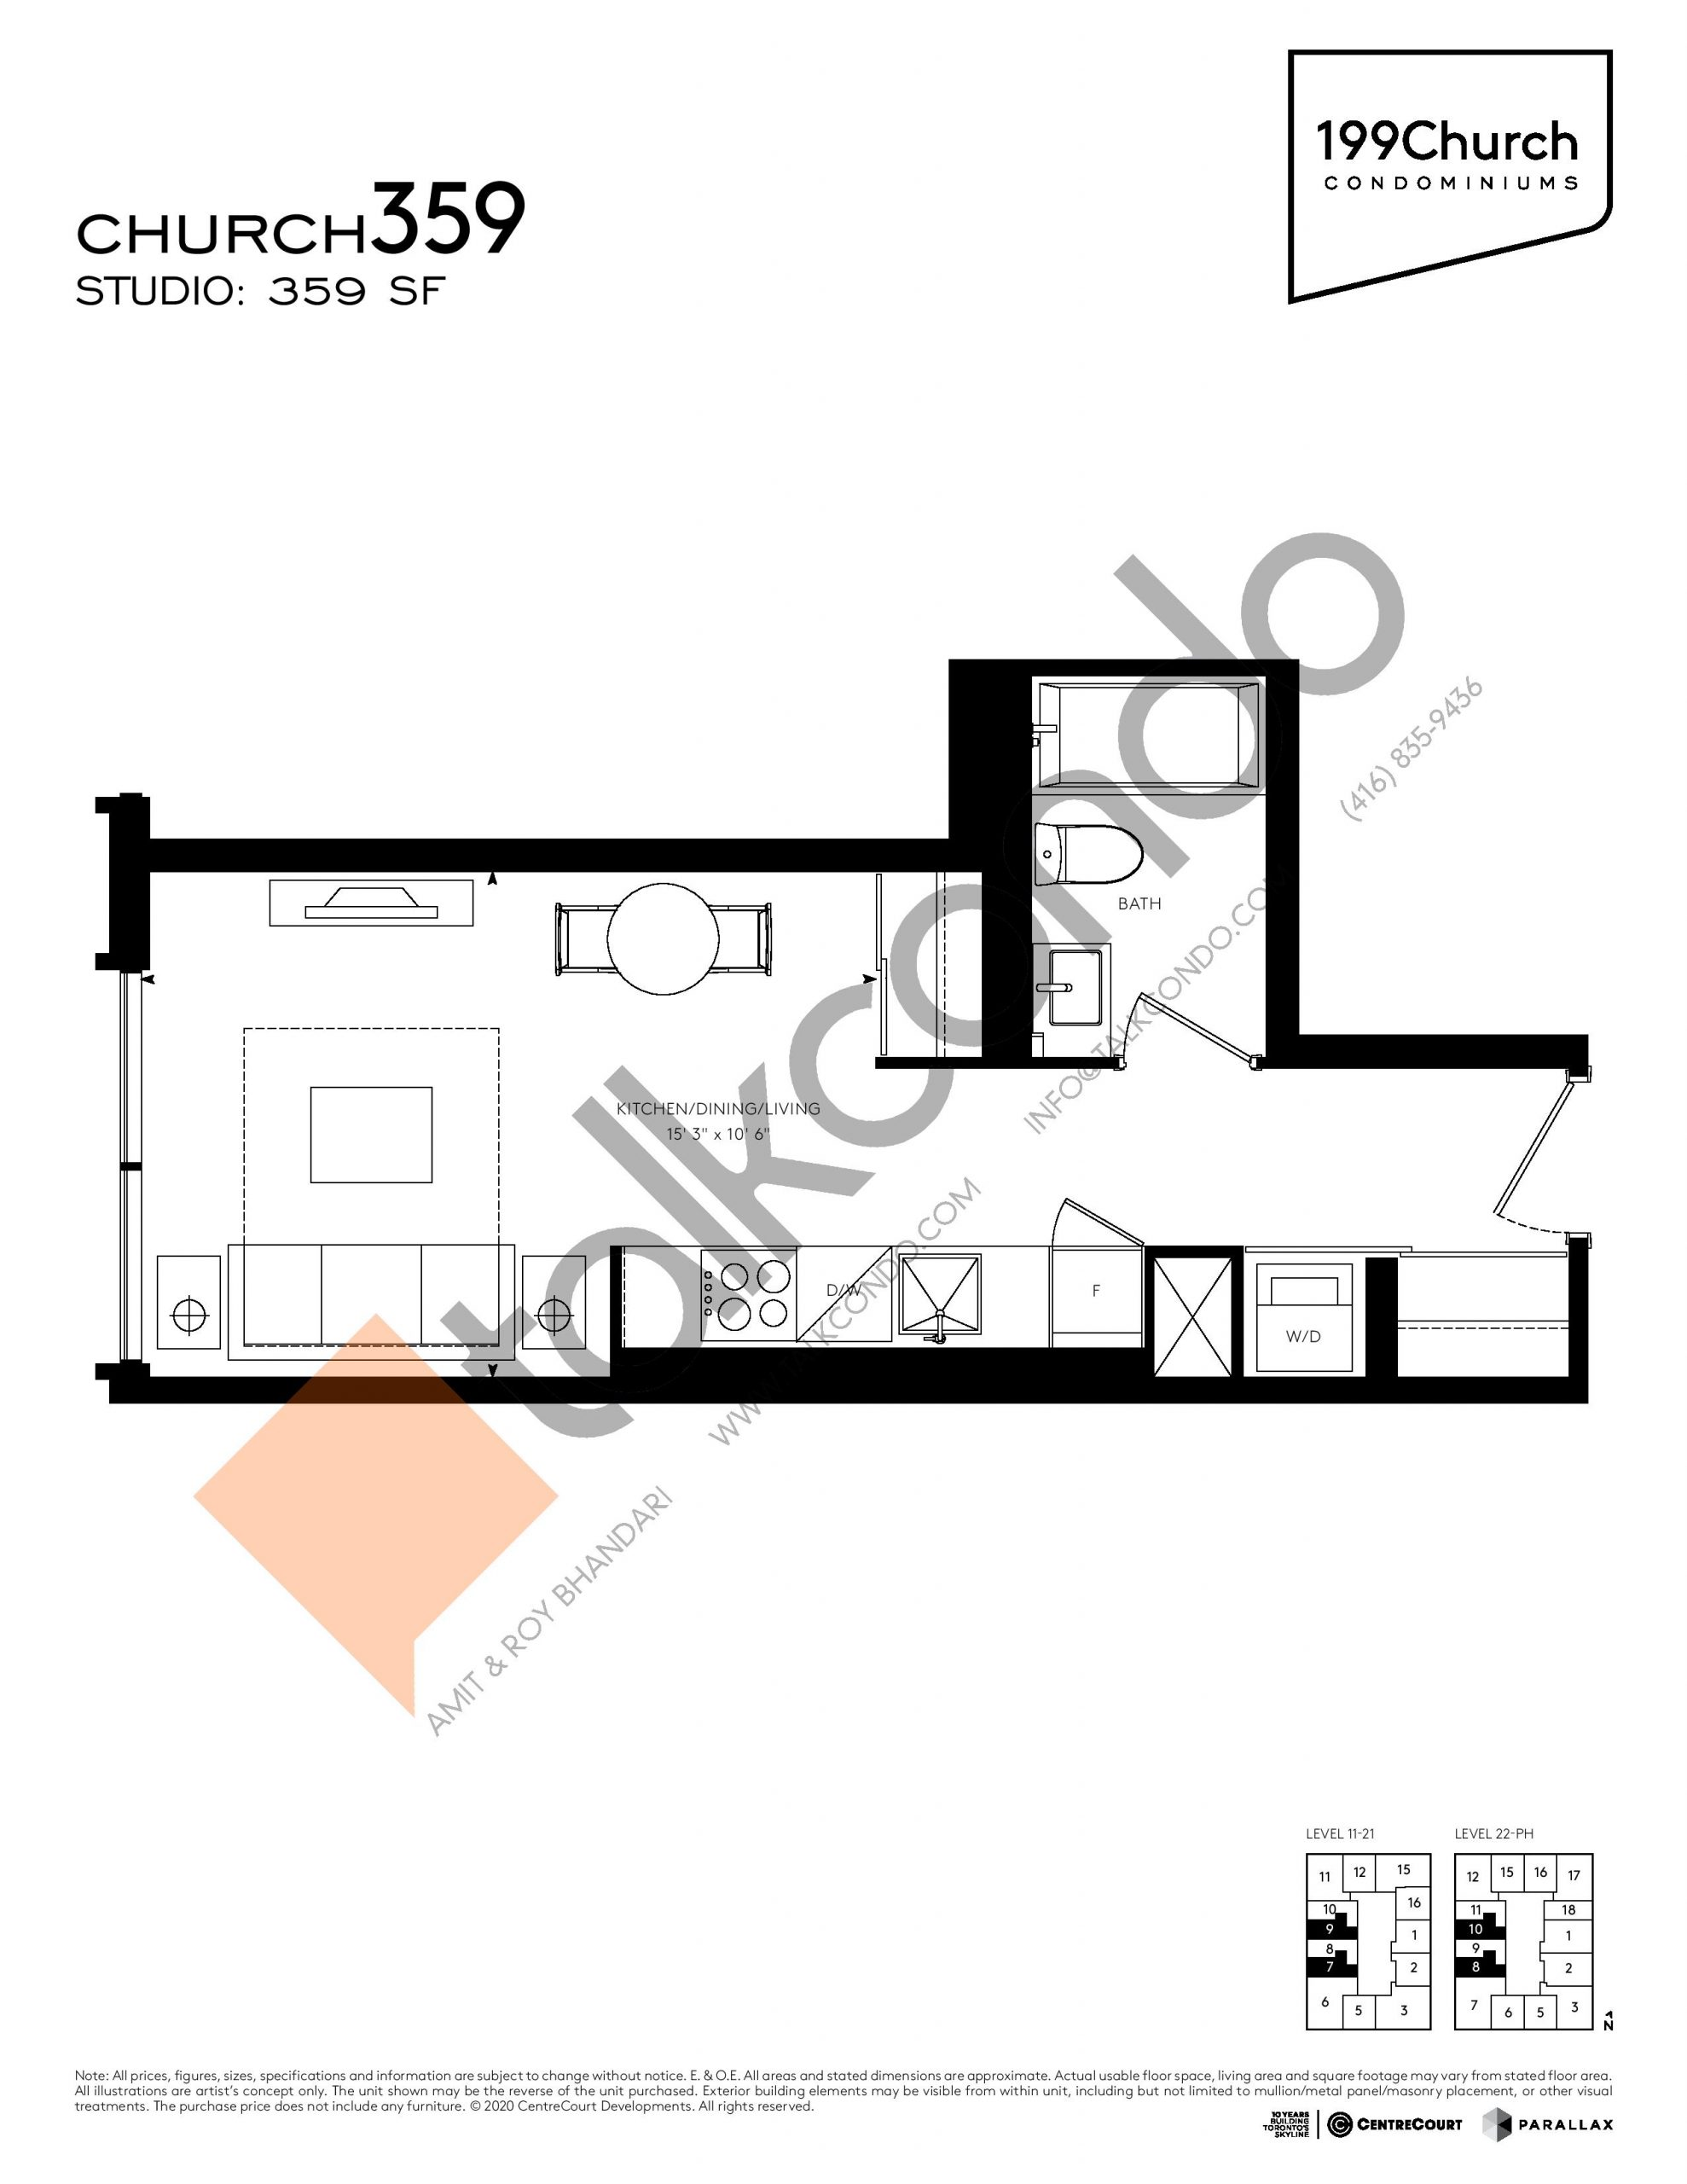 Church 359 Floor Plan at 199 Church Condos - 359 sq.ft